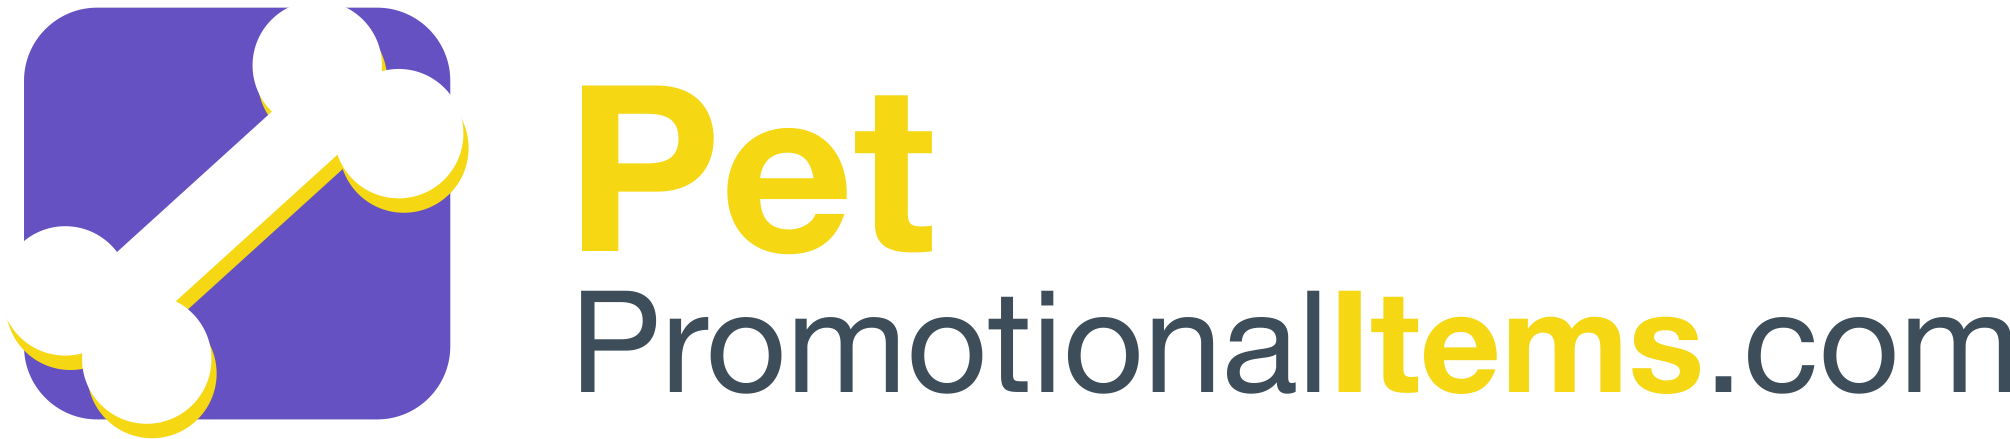 Pet Promotional Items Logo.png